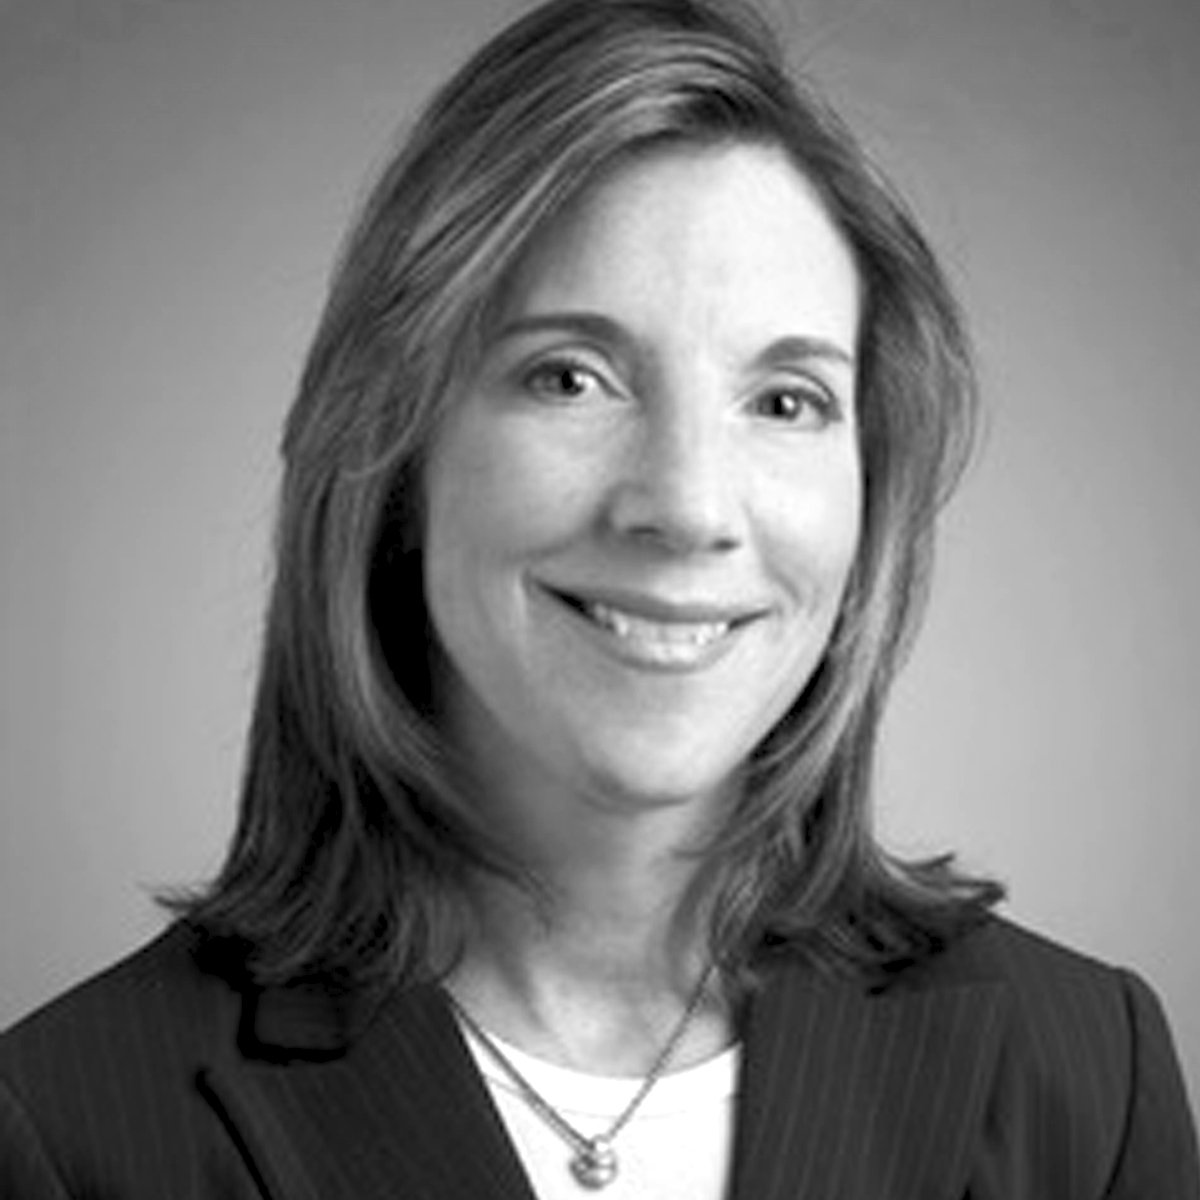 Marita Kennedy Wein, Independent Director, Private investment funds and registered mutual funds; Board Member, High Water Women